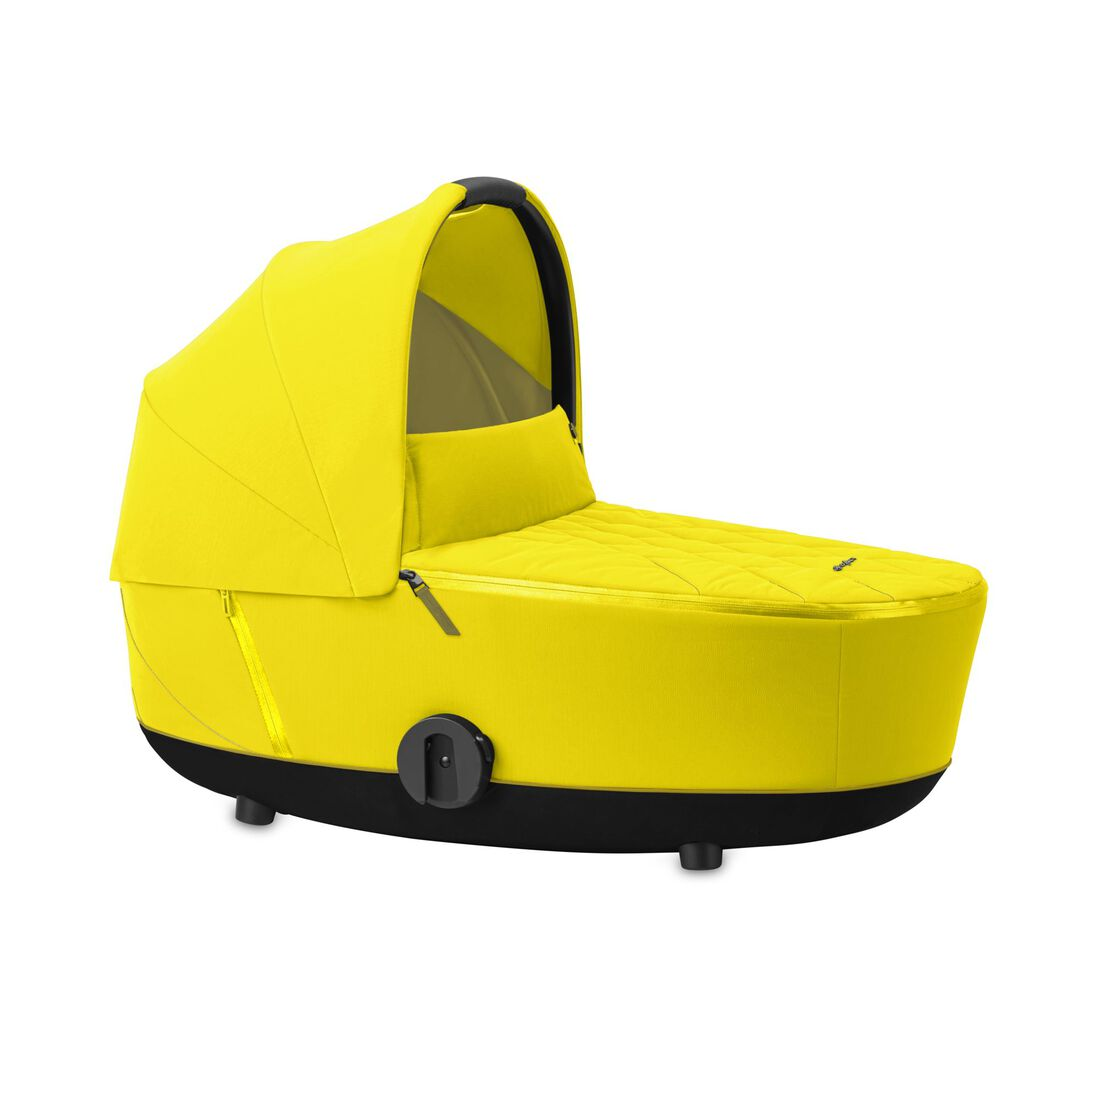 CYBEX Mios Lux Carry Cot - Mustard Yellow in Mustard Yellow large Bild 1